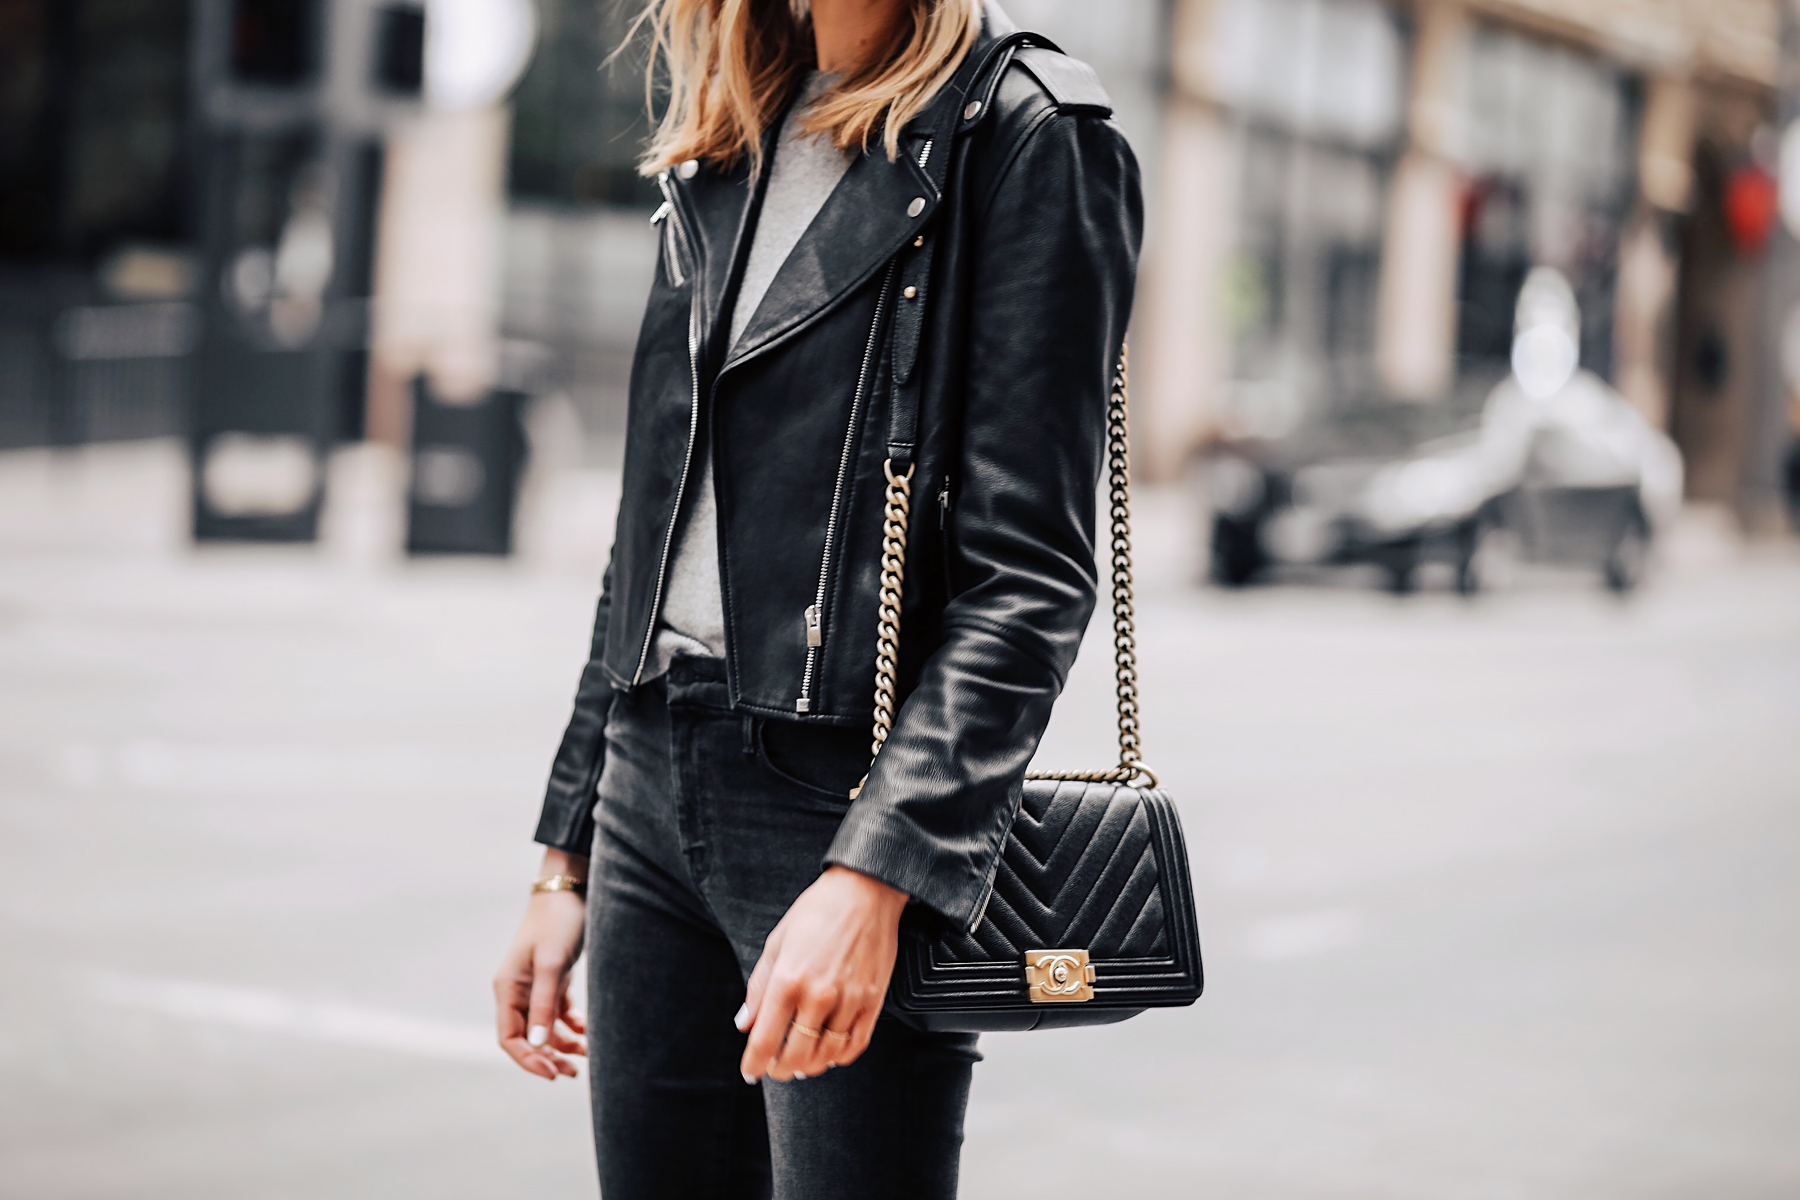 Blonde Woman Wearing Club Monaco Black Leather Jacket Grey Sweater Black Skinny Jeans Chanel Black Boy Bag Fashion Jackson San Diego Fashion Blogger Street Style